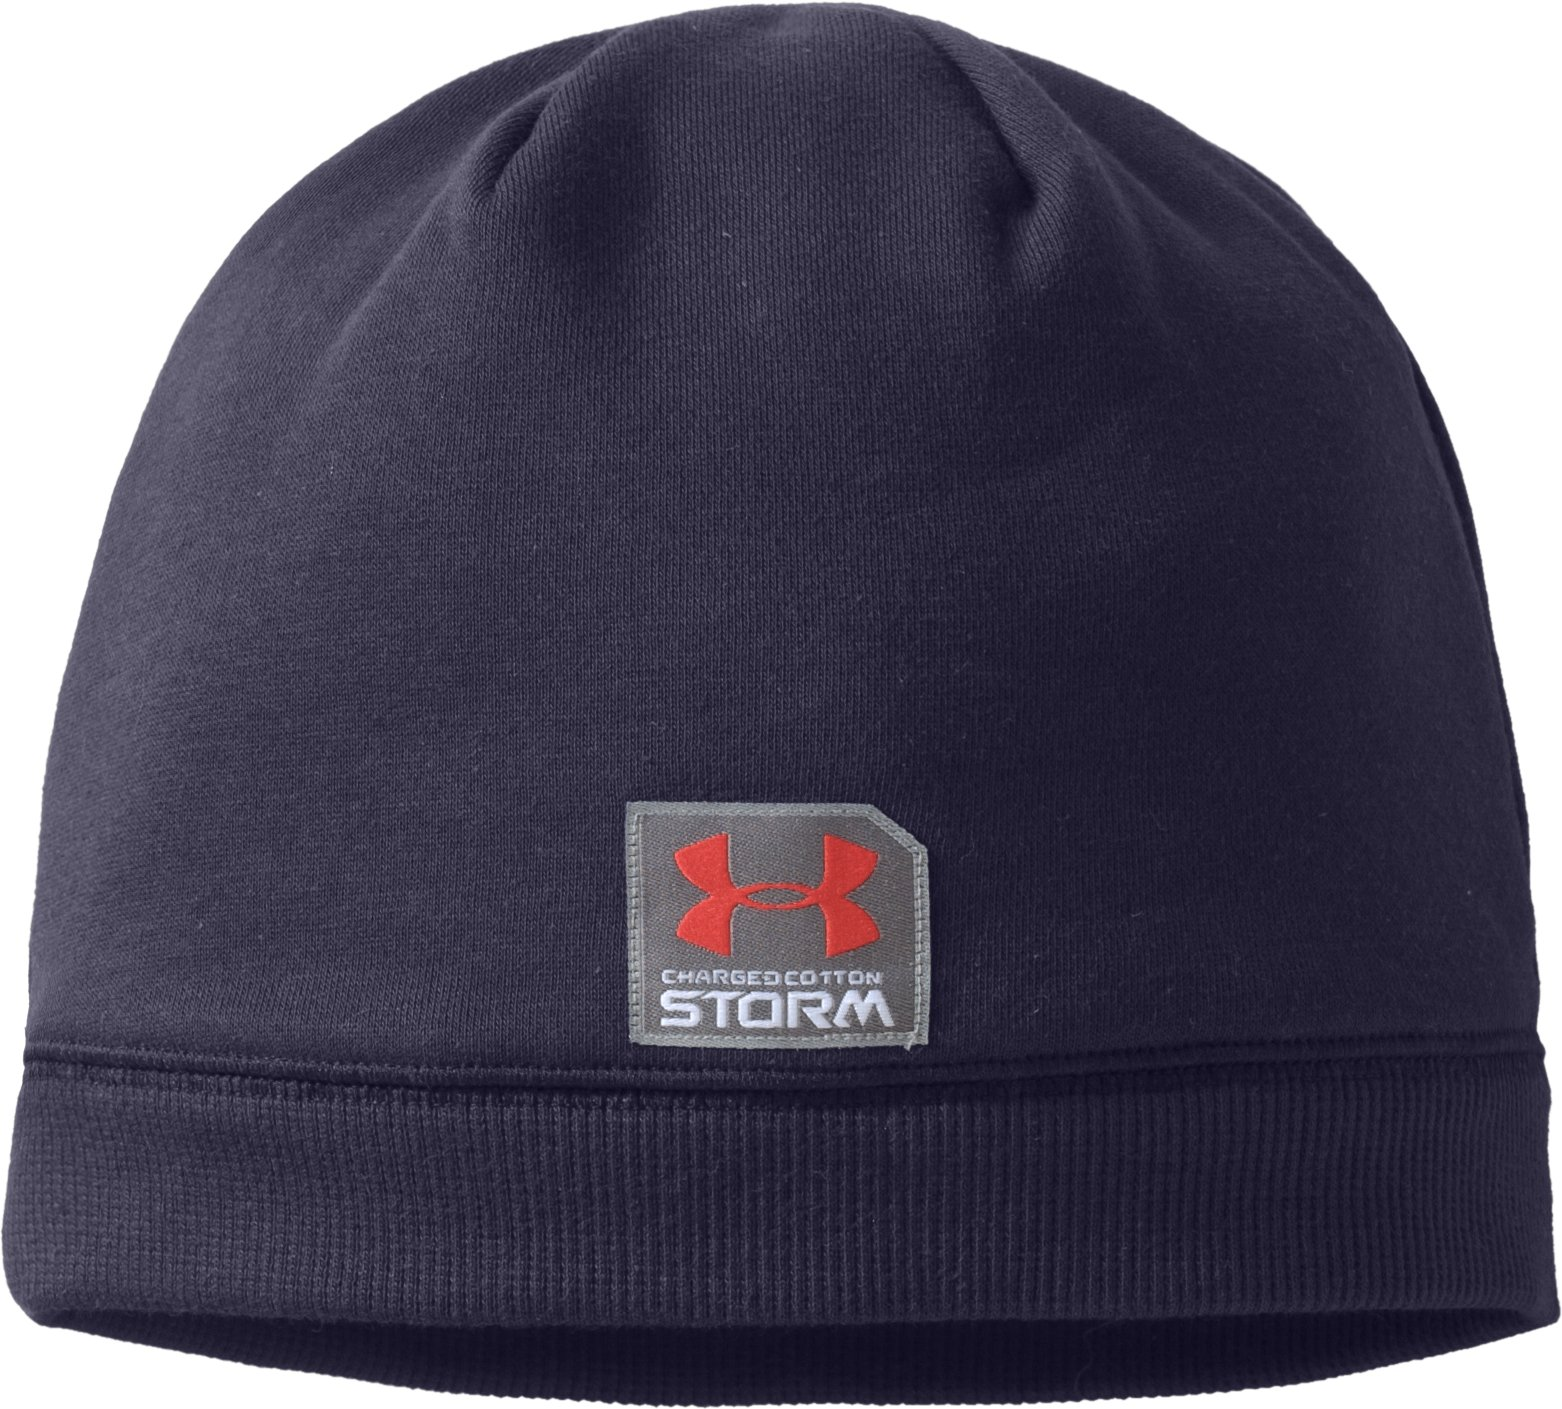 Mens Charged Cotton® Storm Beanie, Midnight Navy